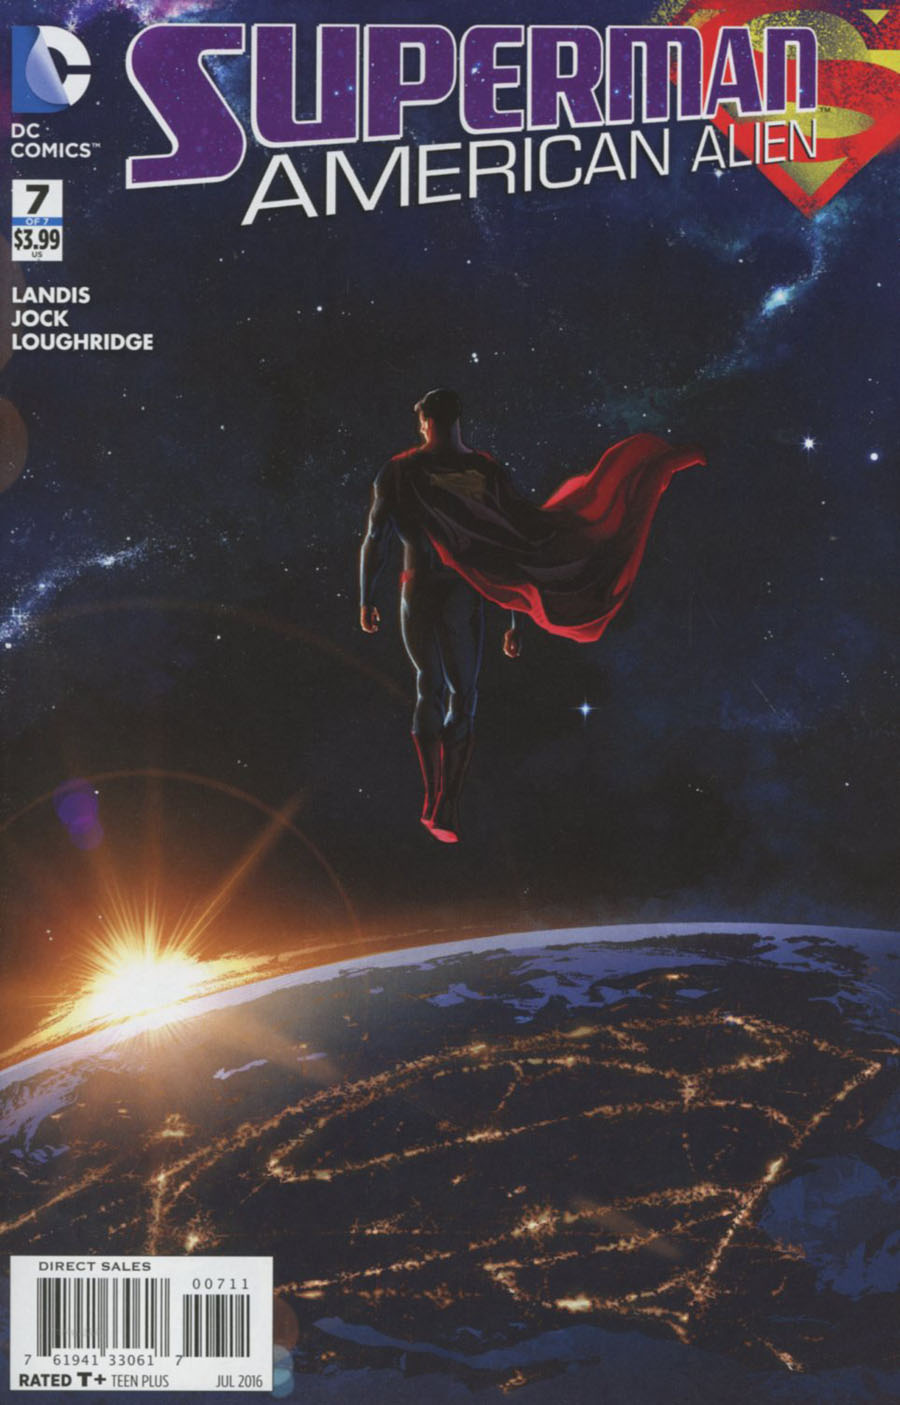 Superman: American Alien #7